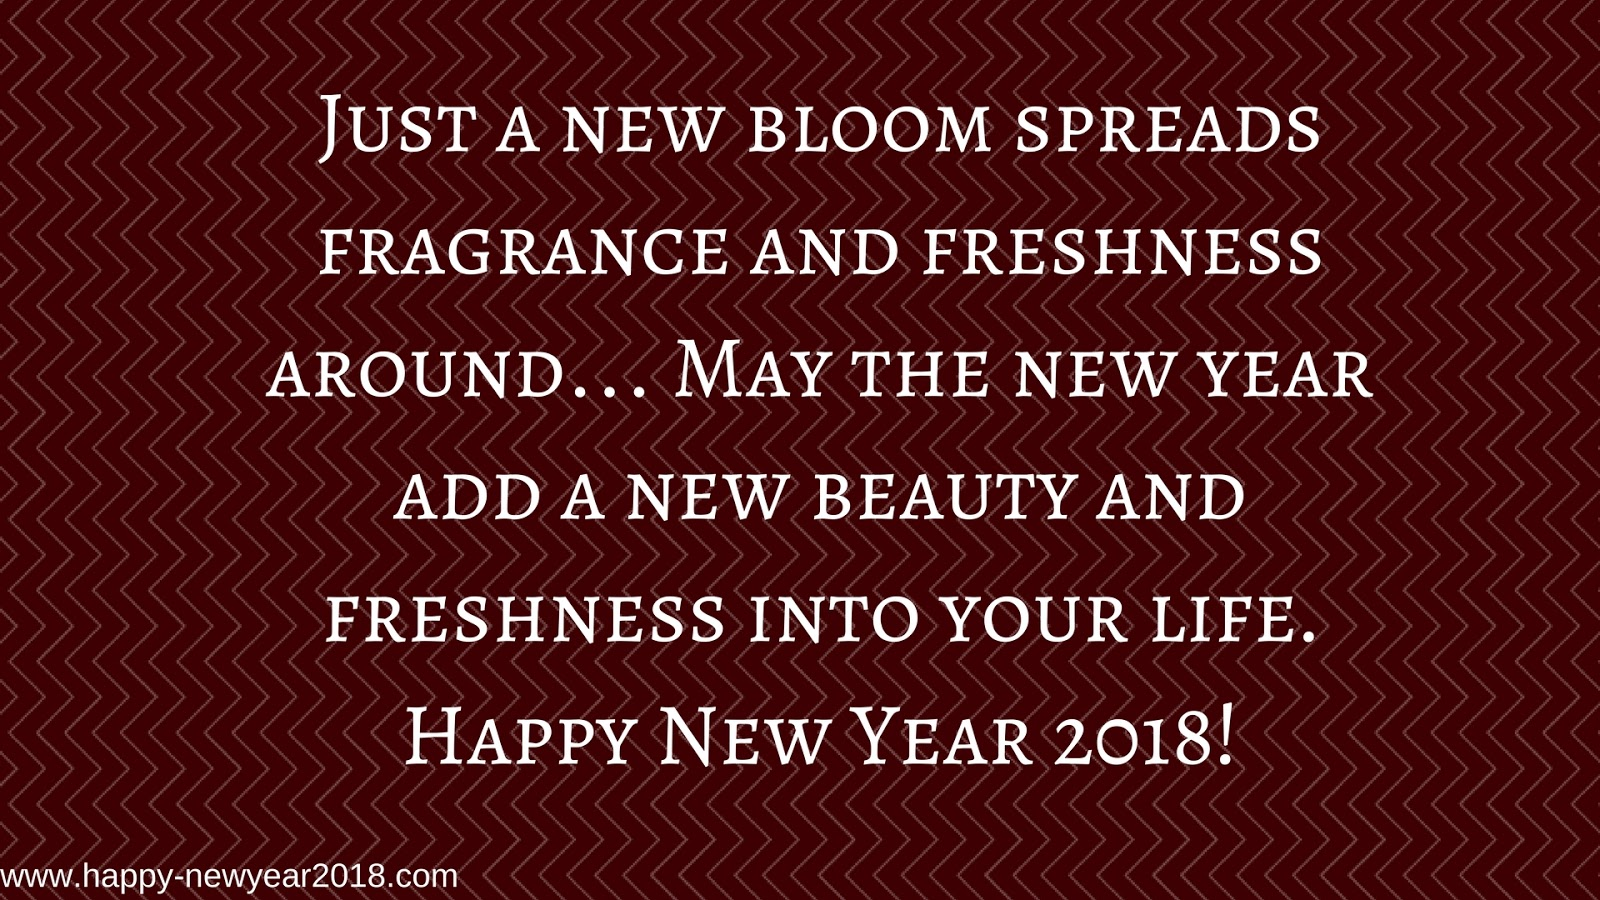 Happy New Year 2018 Images,Wishes,hd wallpapers